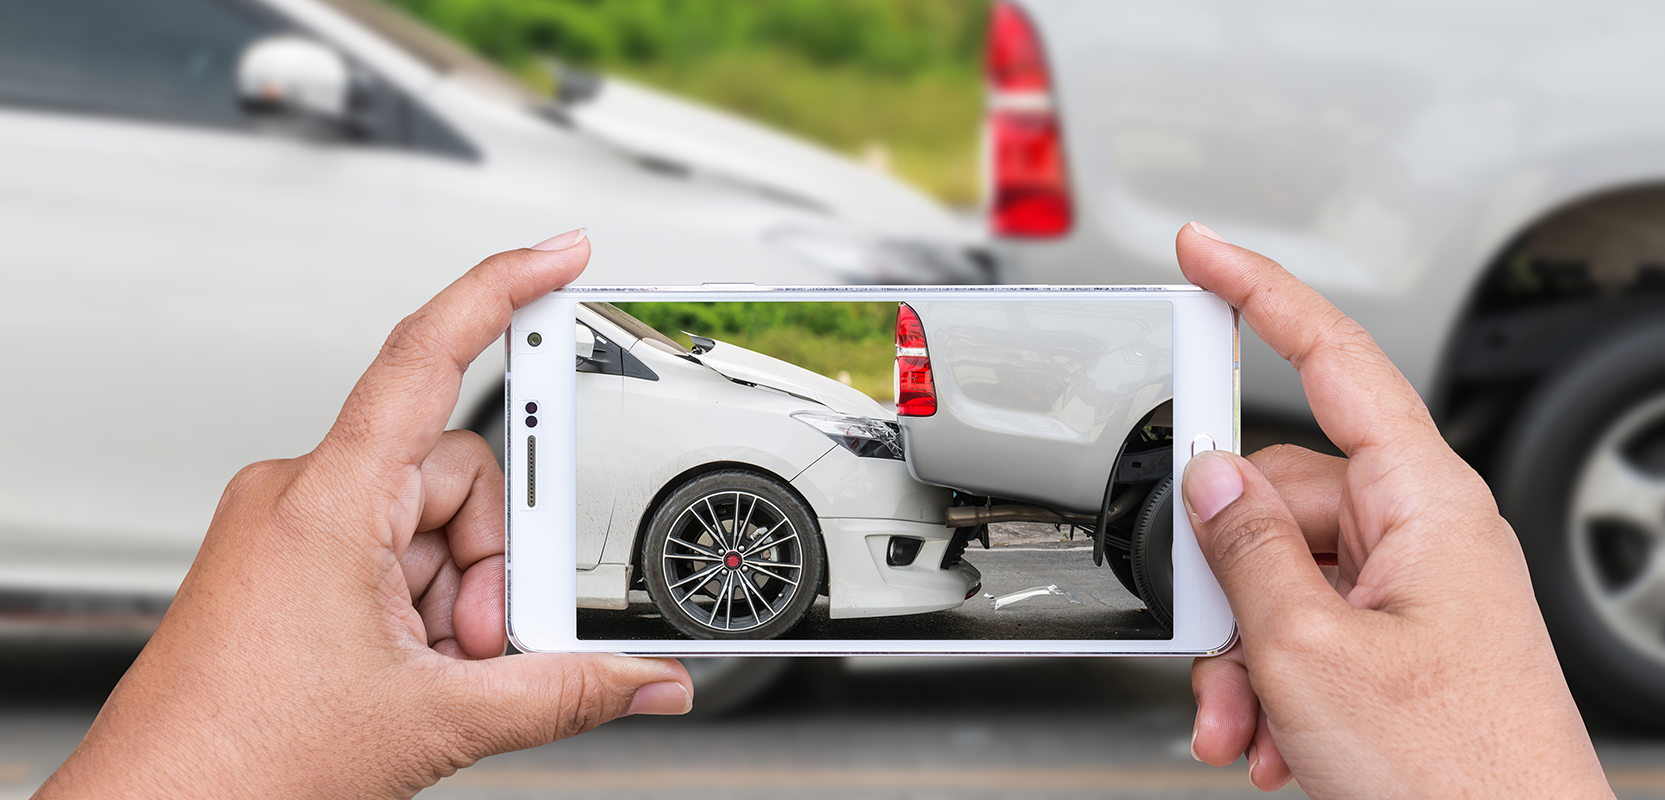 Image showing two crashed cars and person taking picture with cell phone camera.